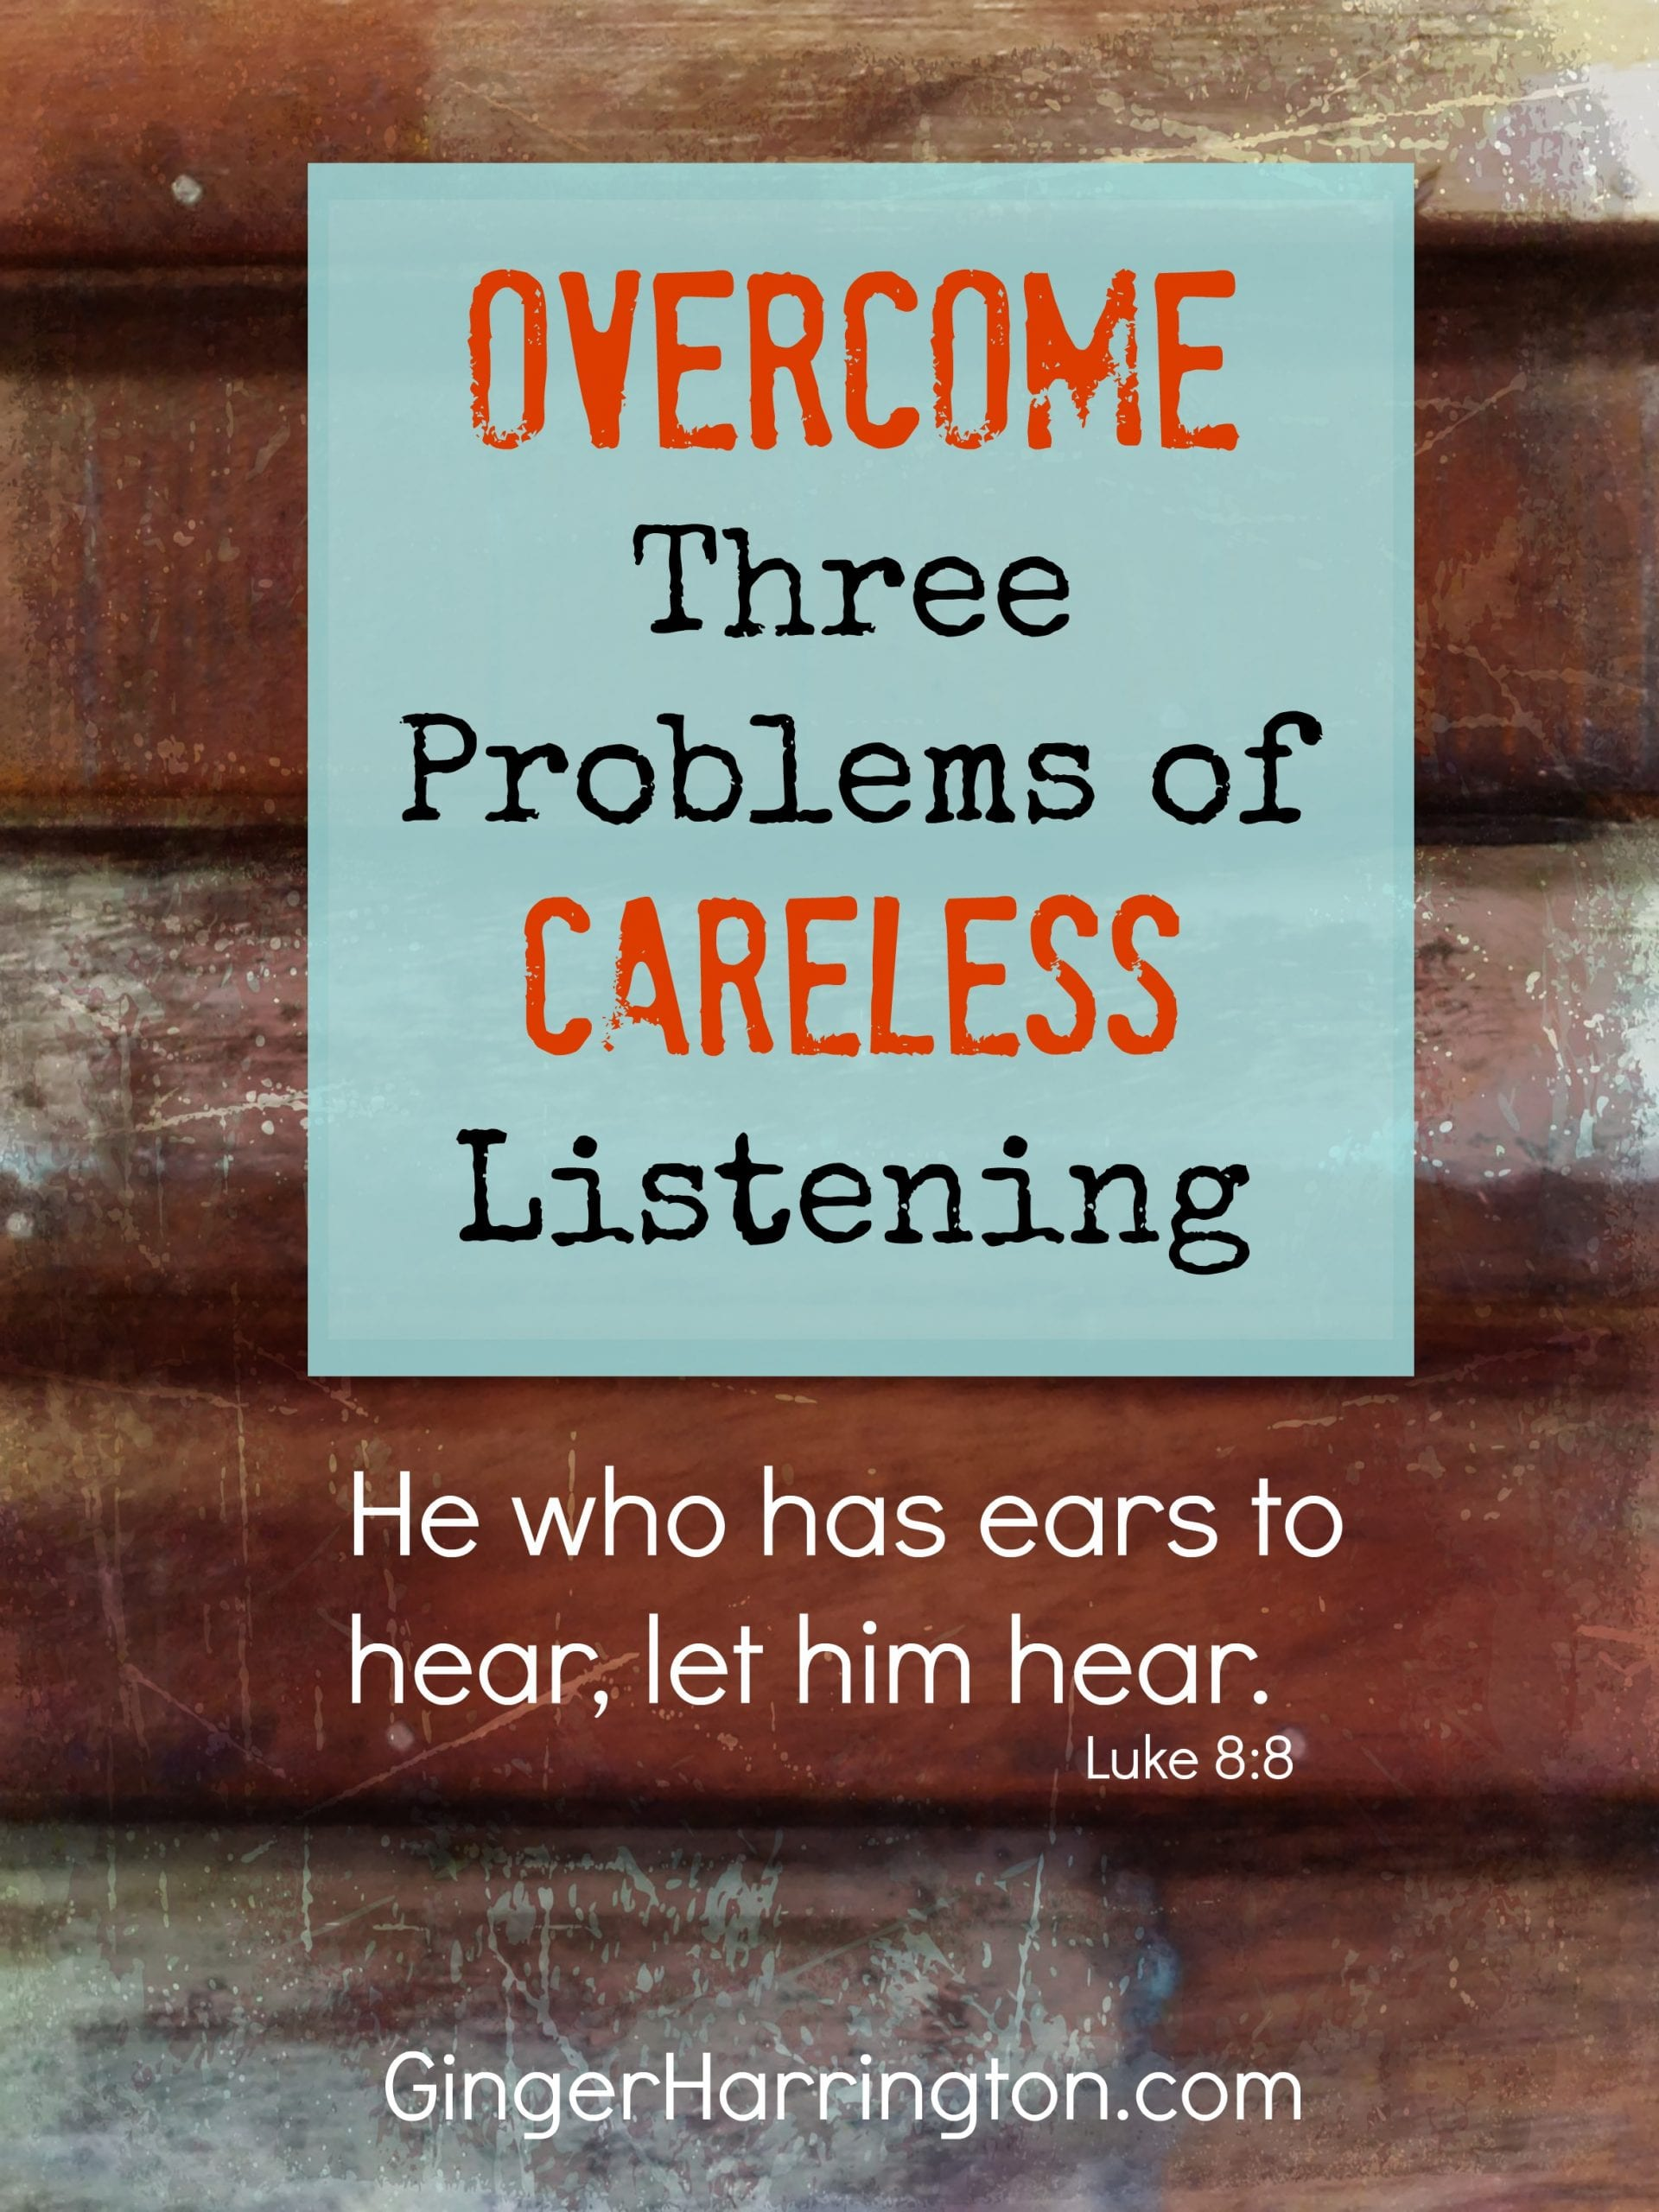 Overcome Three Problems of Careless Listening